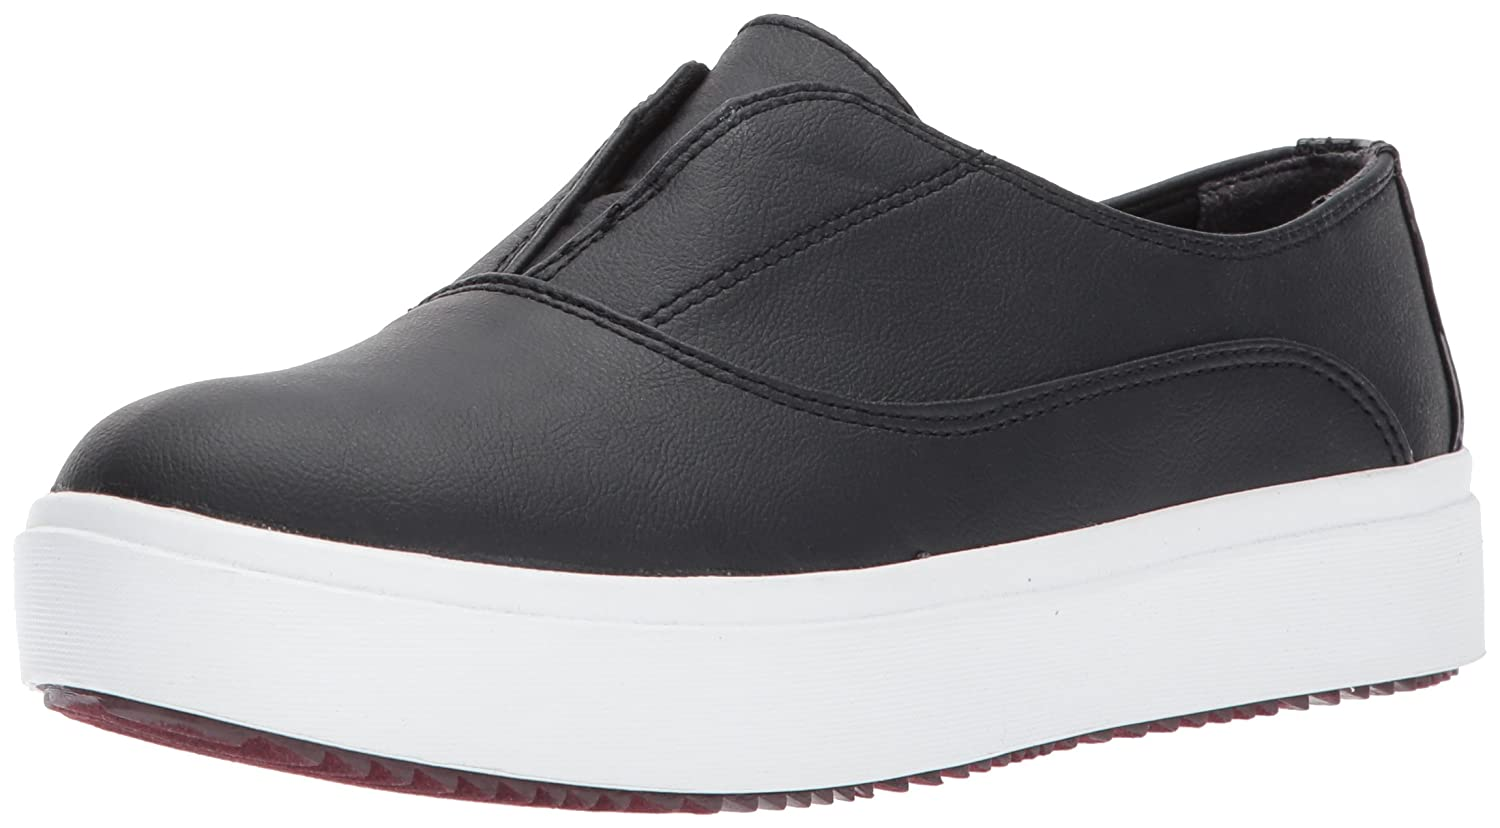 Dr. Scholl's Shoes Women's Brey Fashion Sneaker B072KYKMMP 6.5 B(M) US|Black Stretch